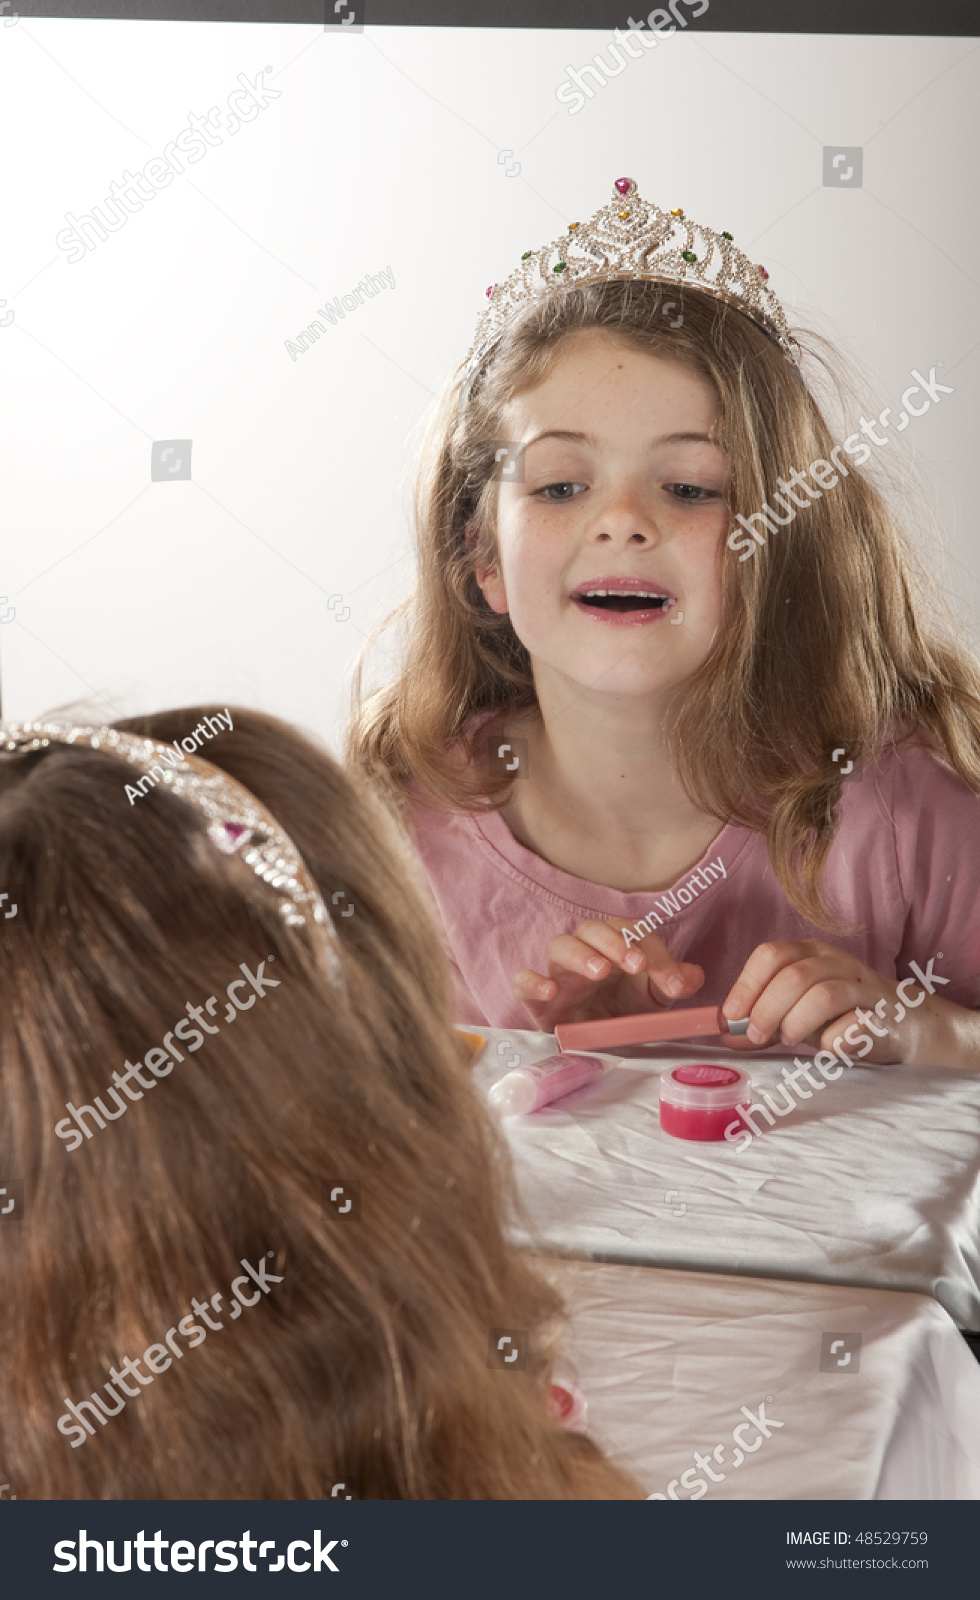 Little Girl Looking Herself Mirror While Stock Photo -6315